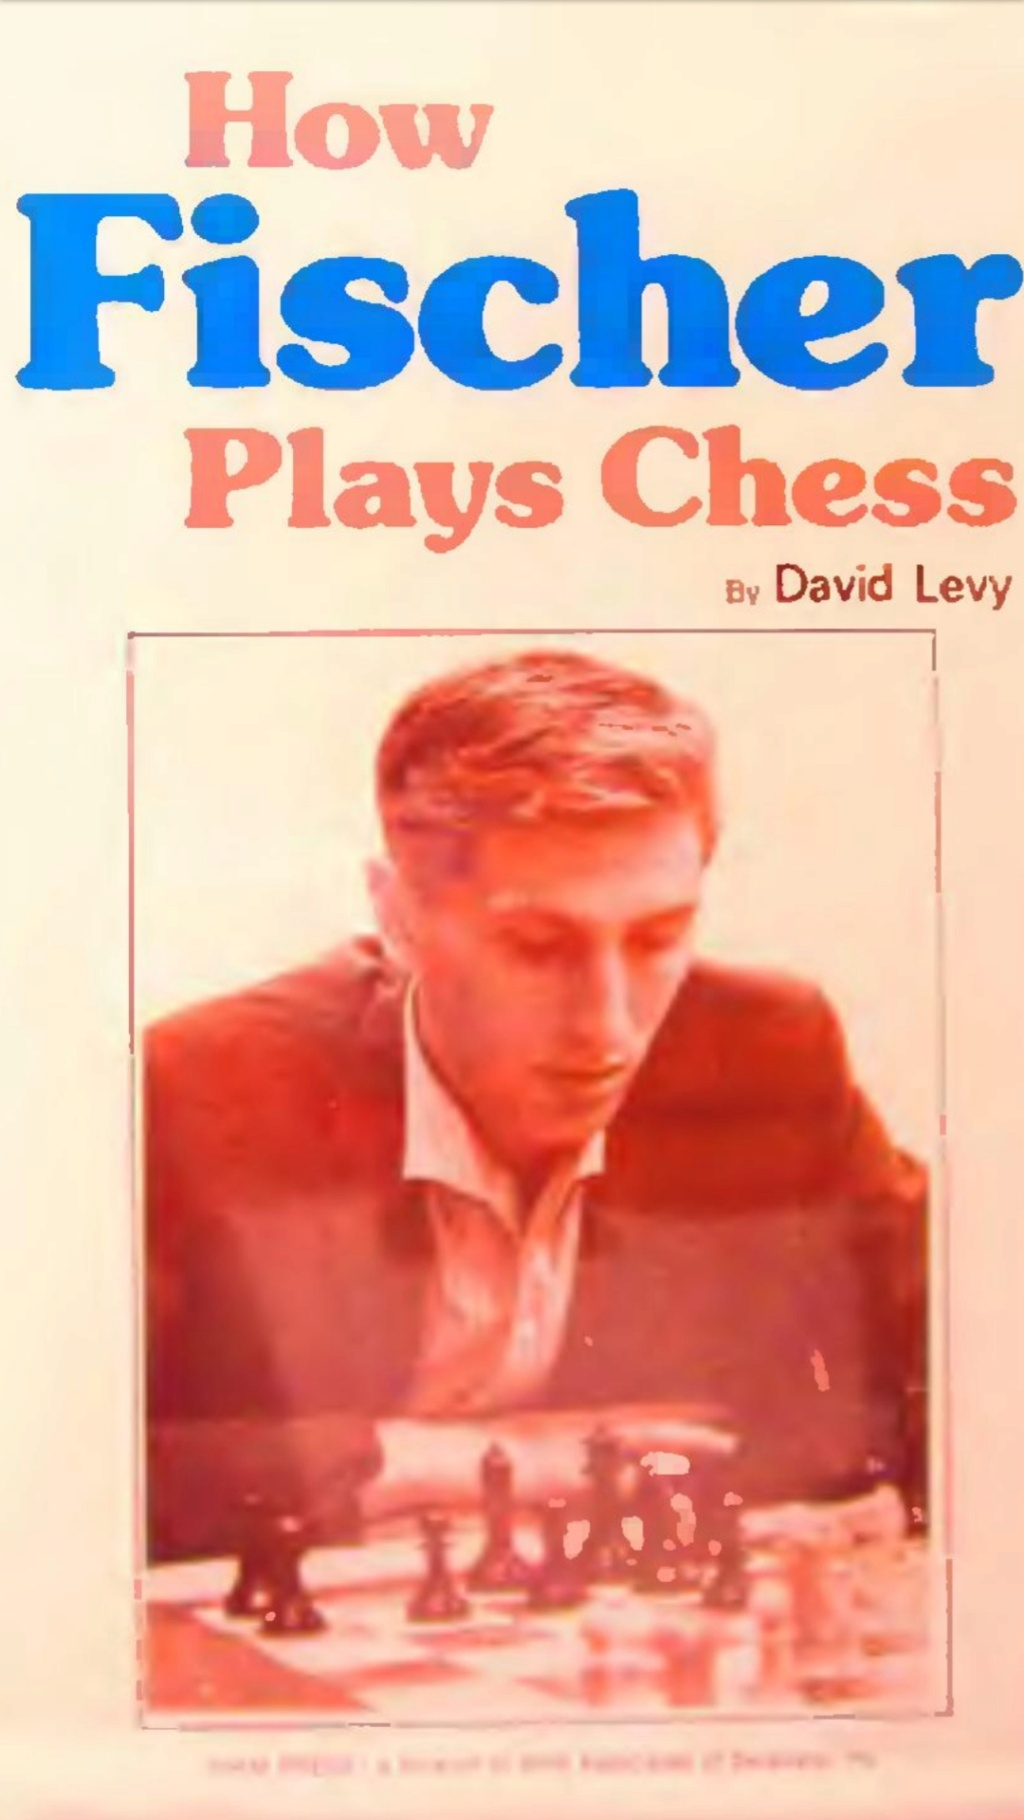 How Fischer Plays Chess  Book by David Levy Scree105